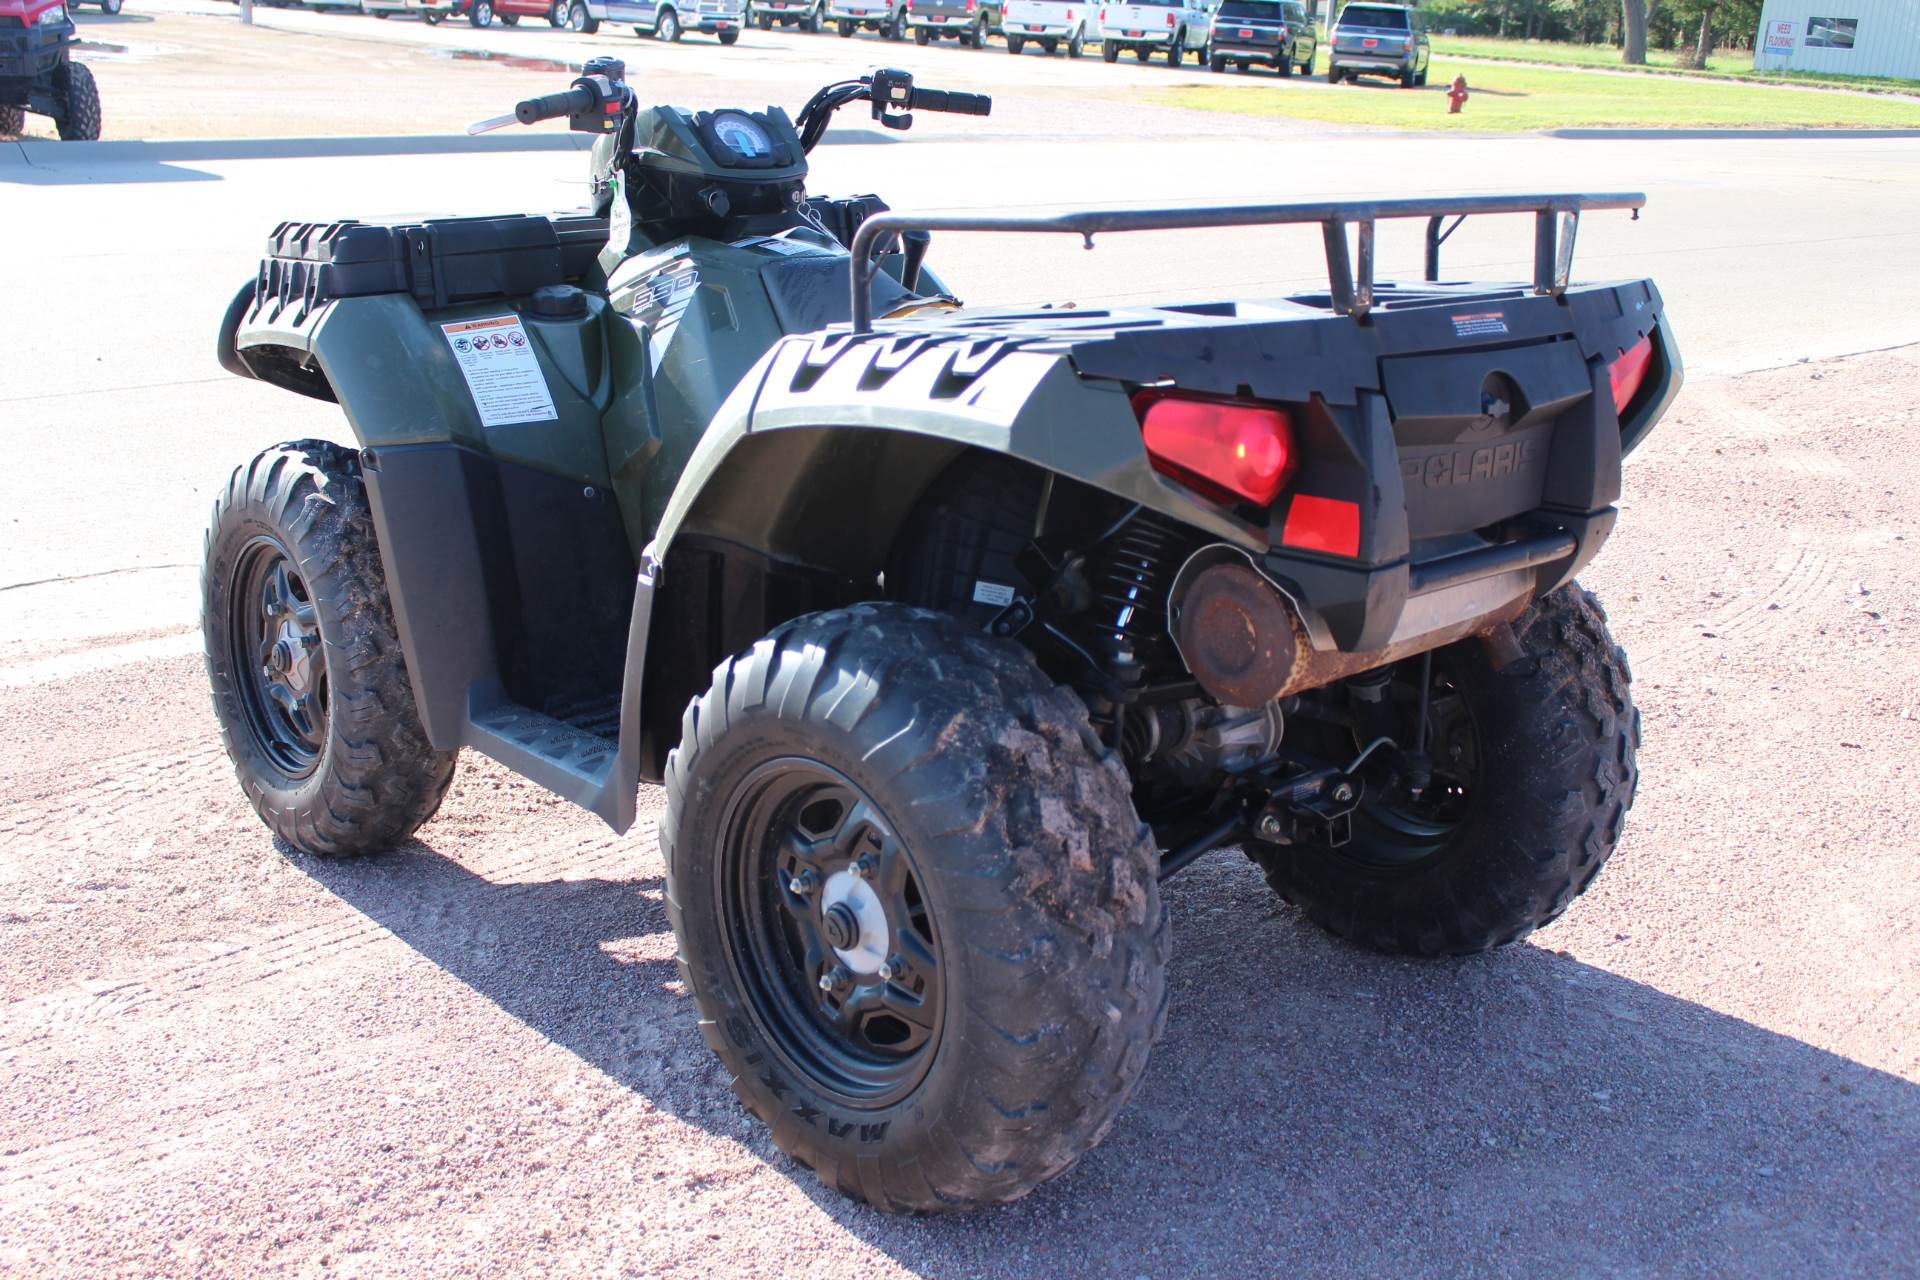 2013 Polaris Sportsman® 550 in Valentine, Nebraska - Photo 3